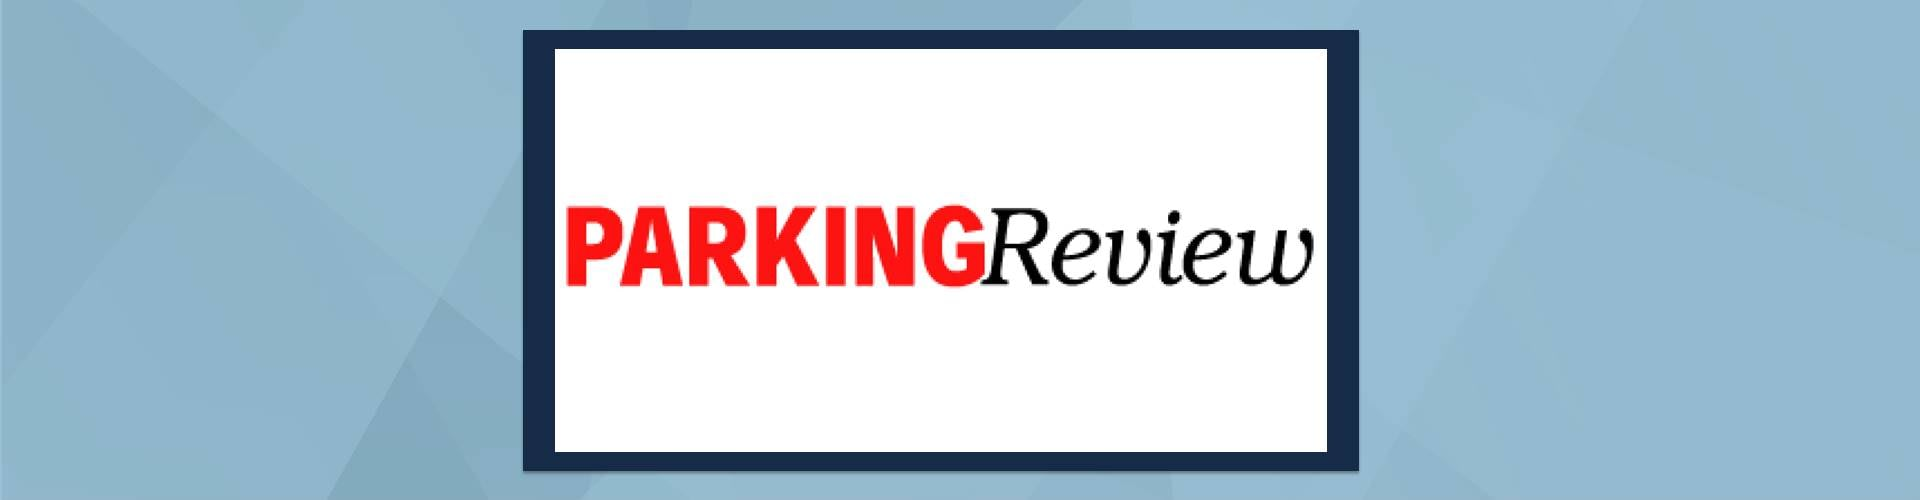 Videalert features in Parking Review